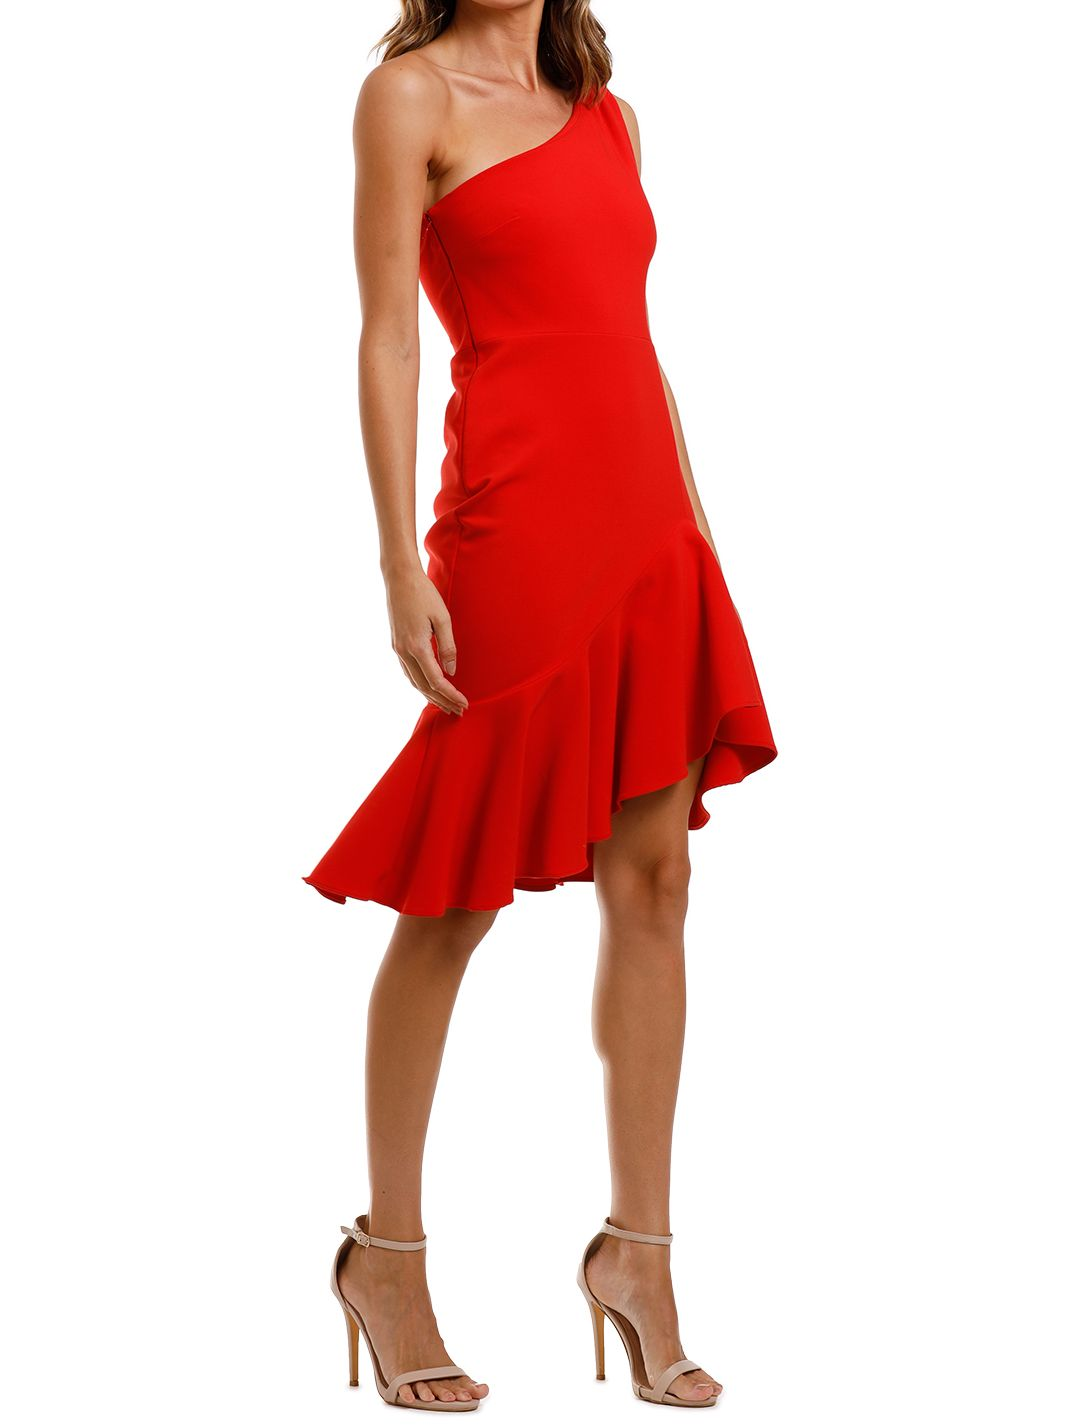 Likely NYC Rollins Dress Red Mini